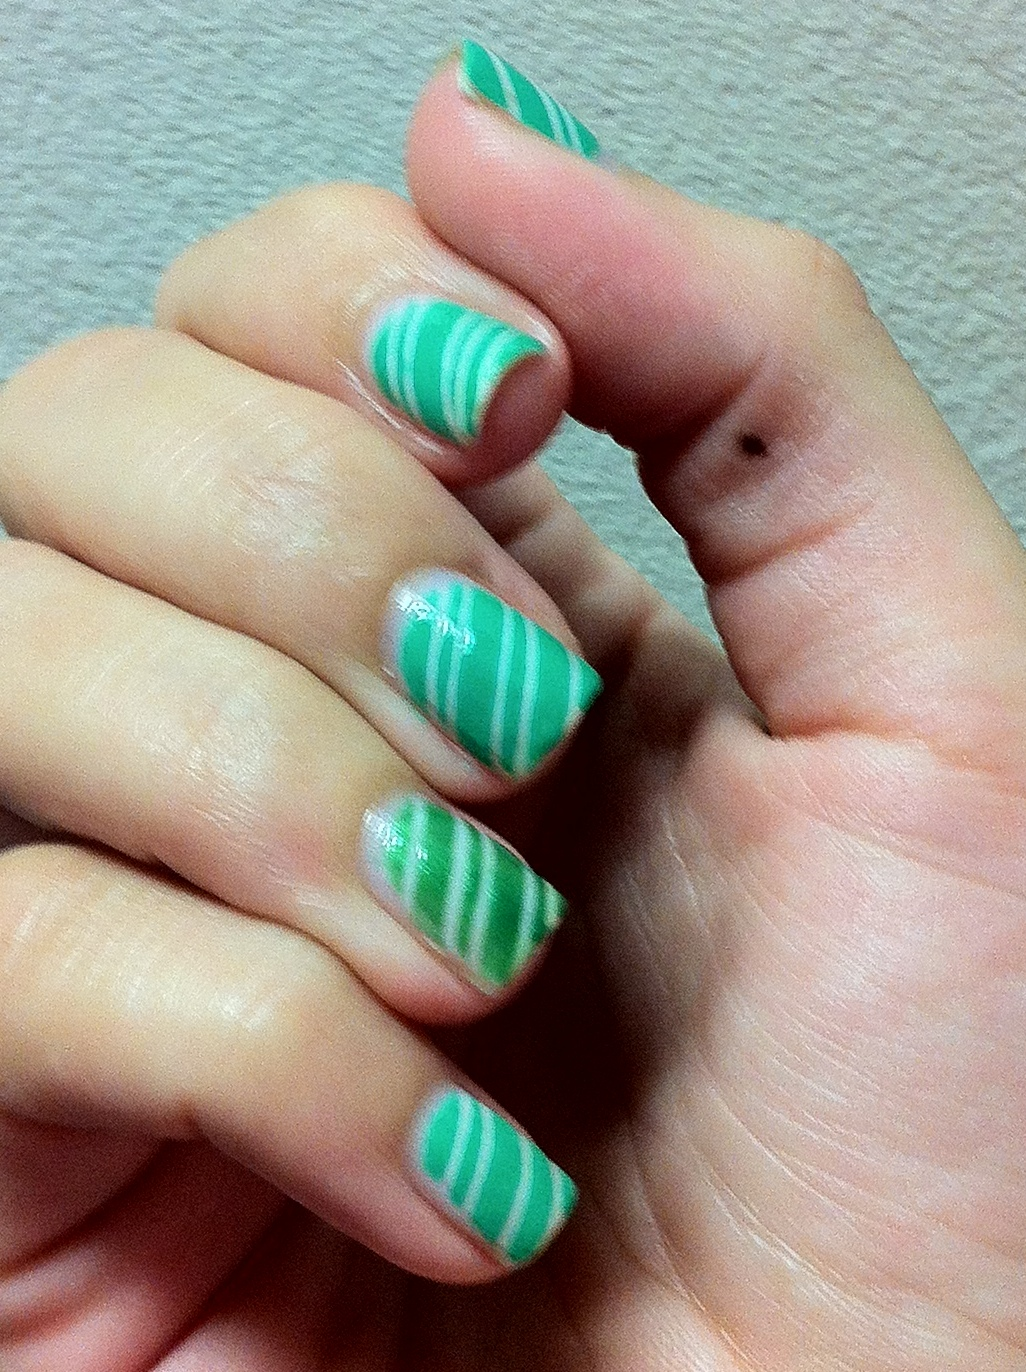 Striped Manicure | Polish My Pretty Nails